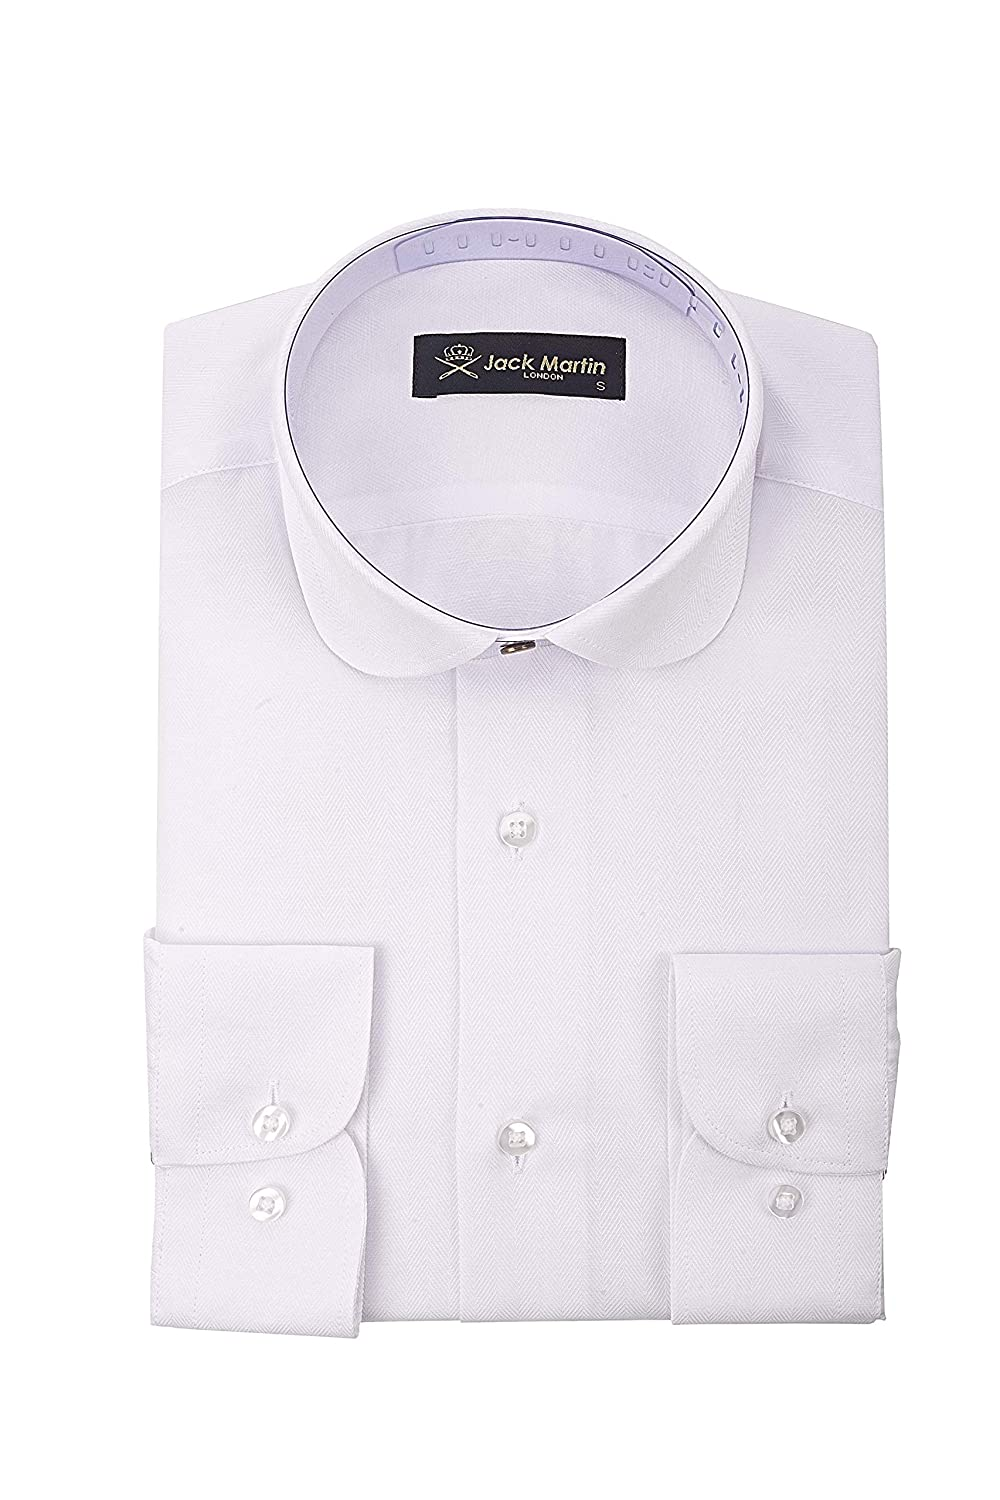 SportsX Men Regular Fit Club Cocktail Satin Long Sleeves Dress Shirt